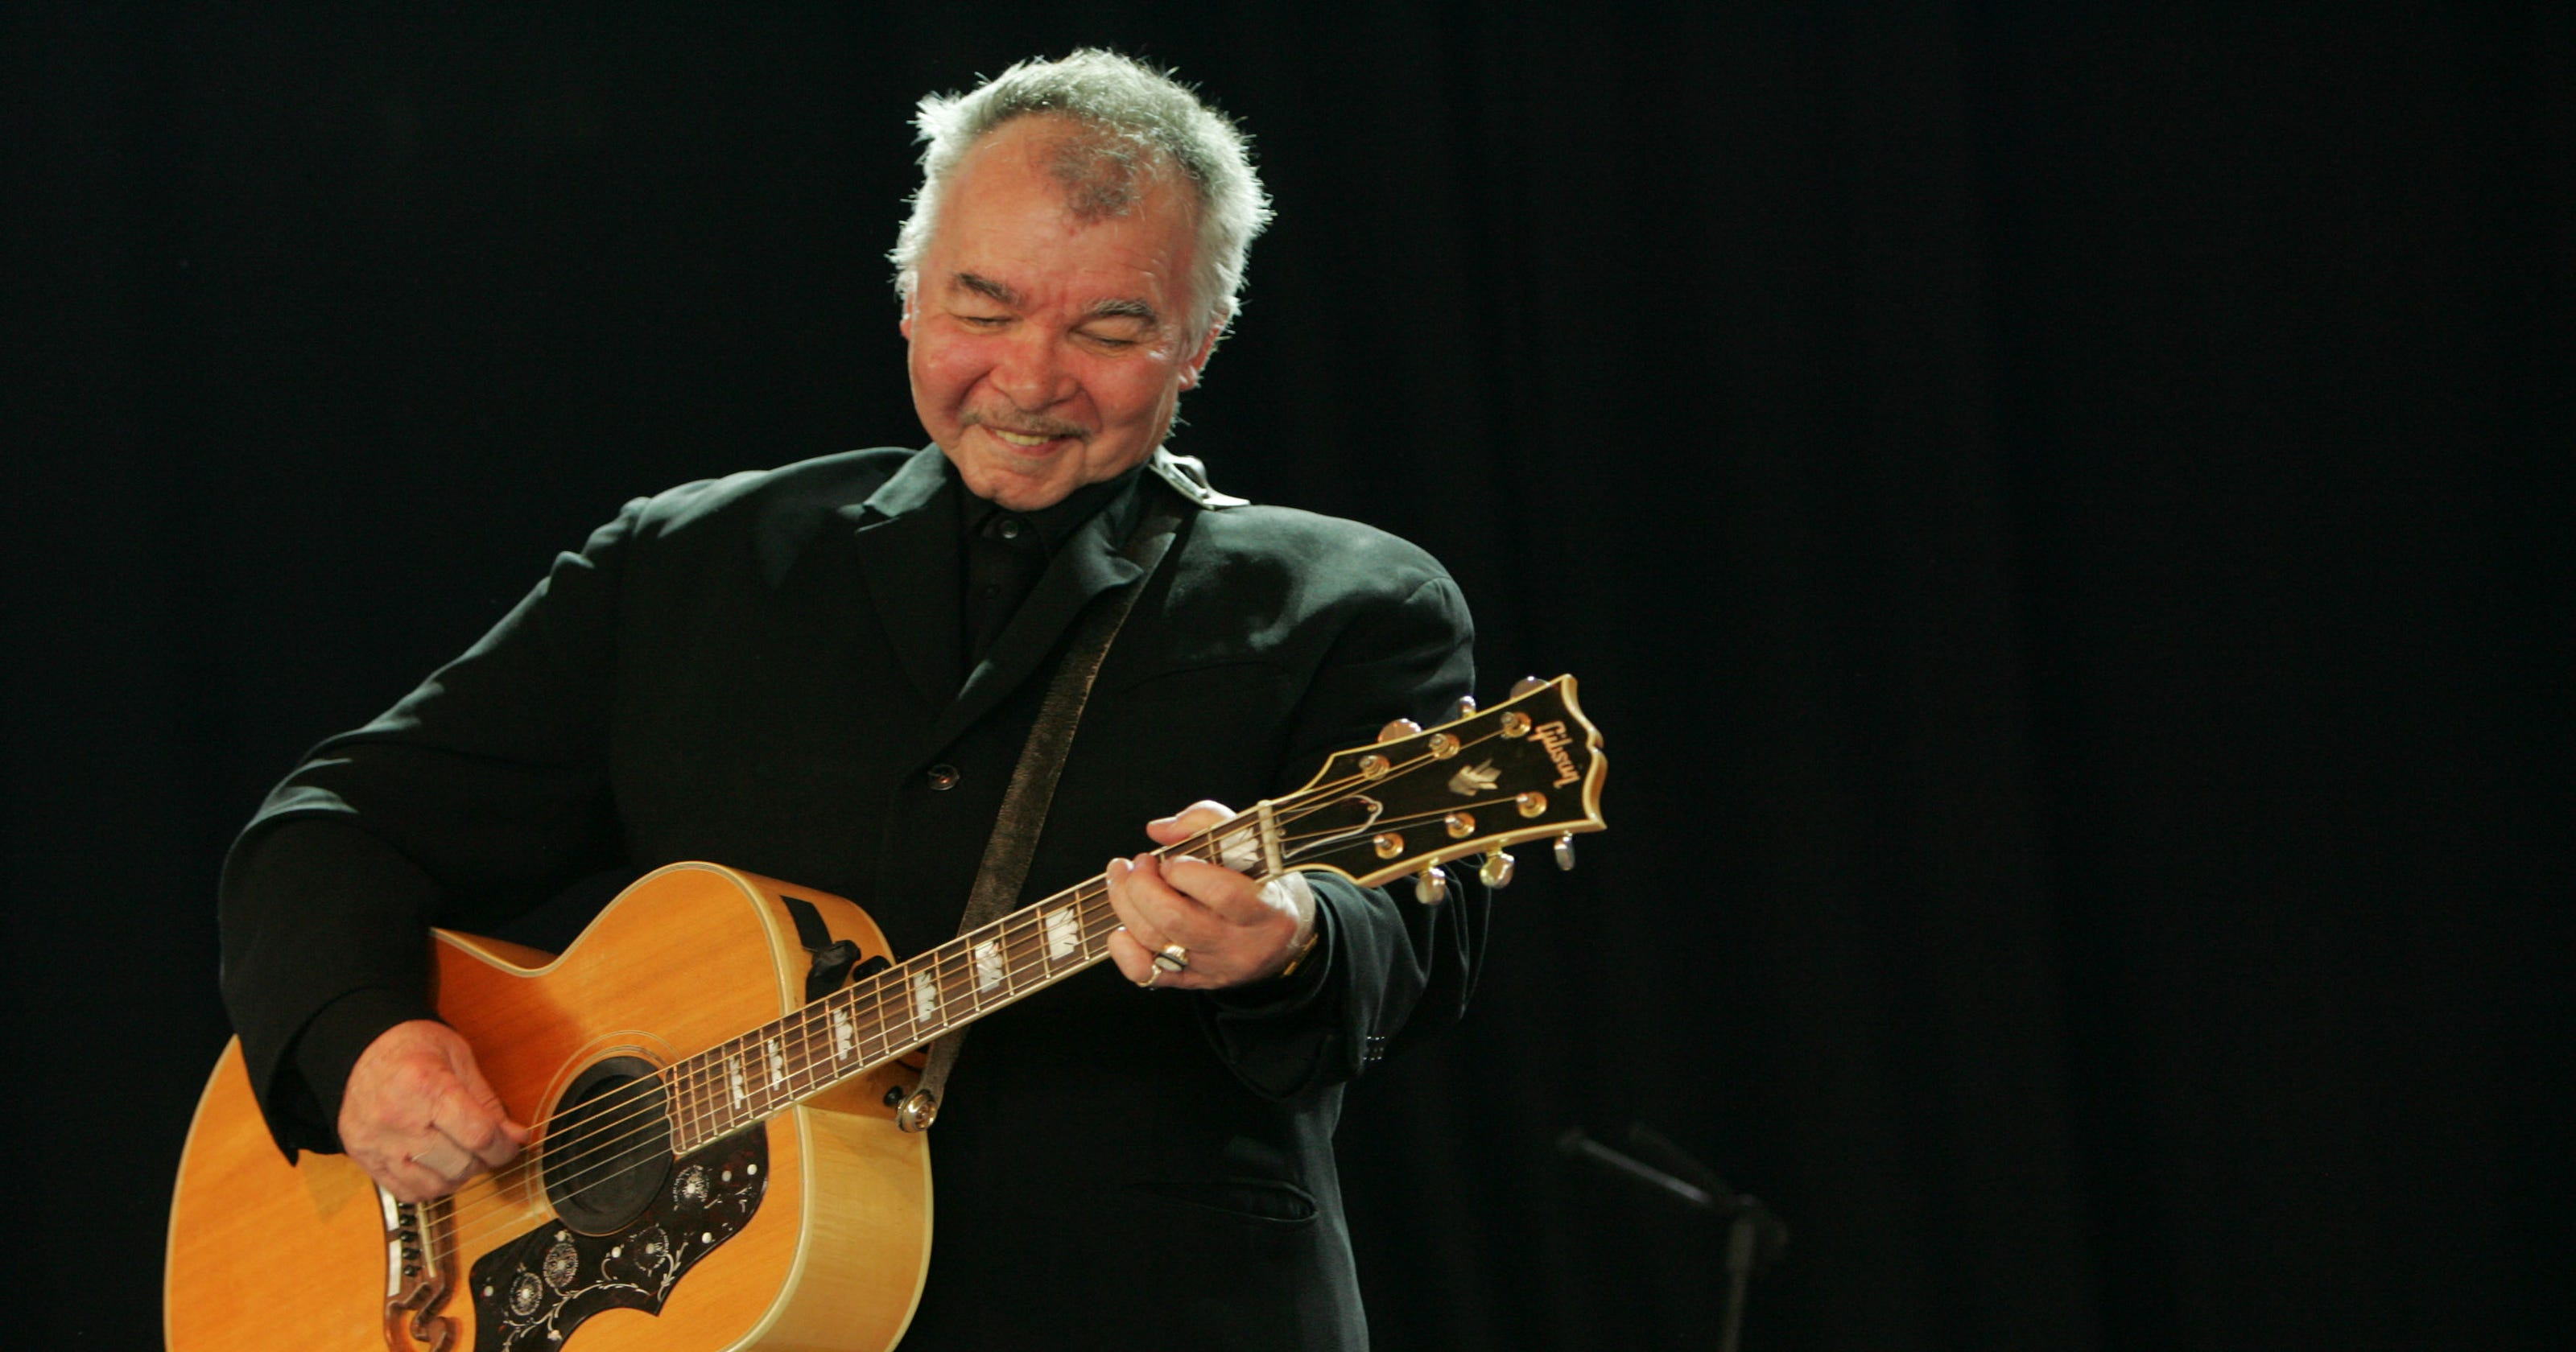 John Prine holds court at The Station Inn